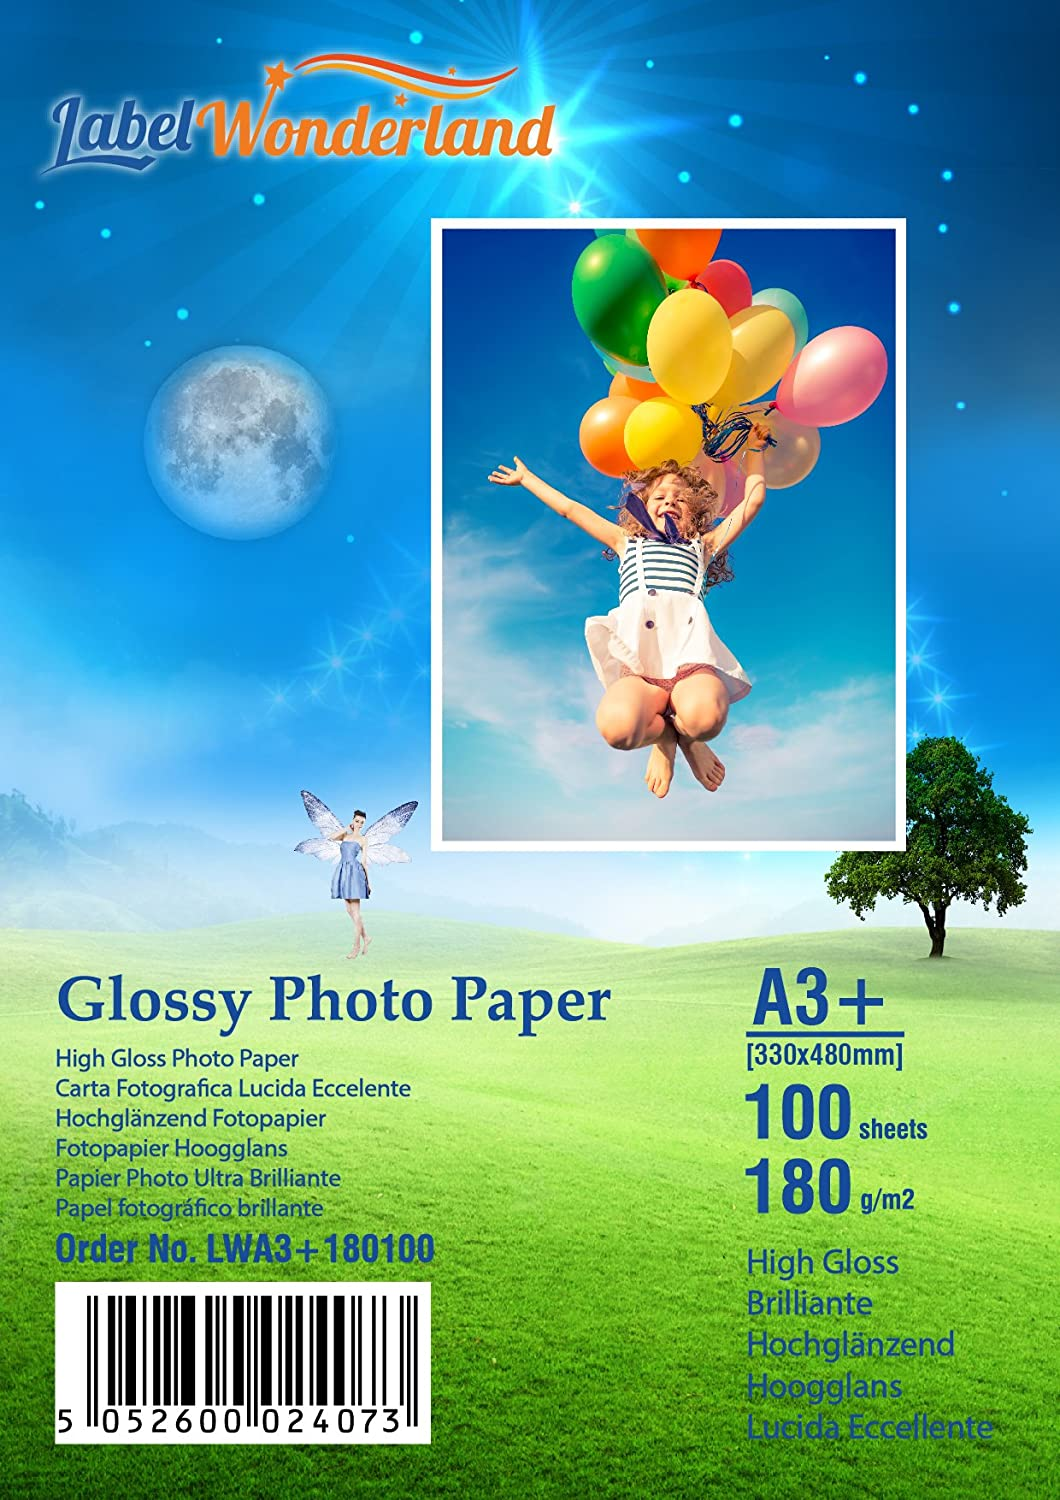 100 Sheets 180gsm Premium Quality High Gloss Photo Paper by LabelWonderland A4